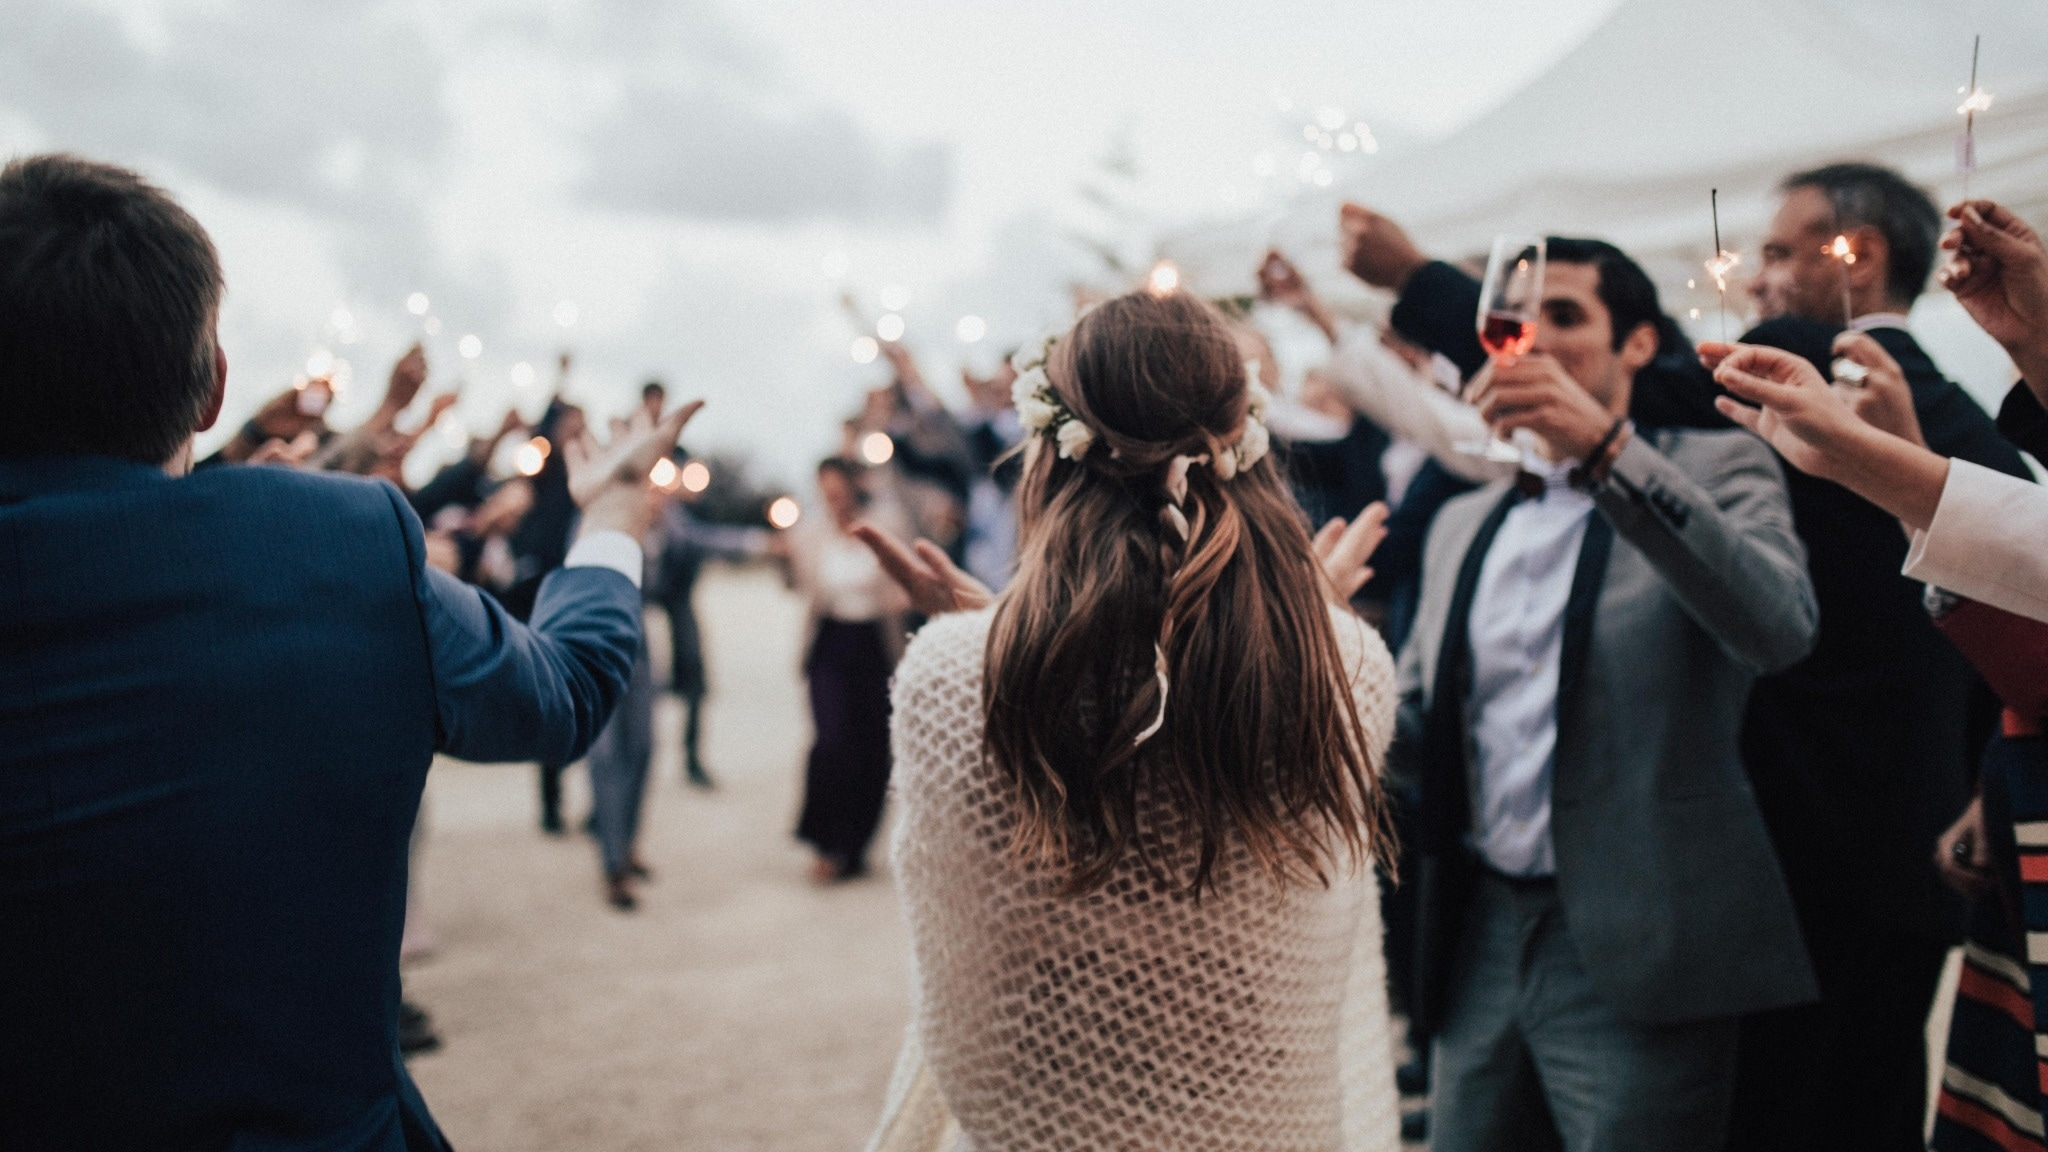 Breaking from Tradition: How Millennial Weddings are Changing: 2018 Wedding Trends Survey